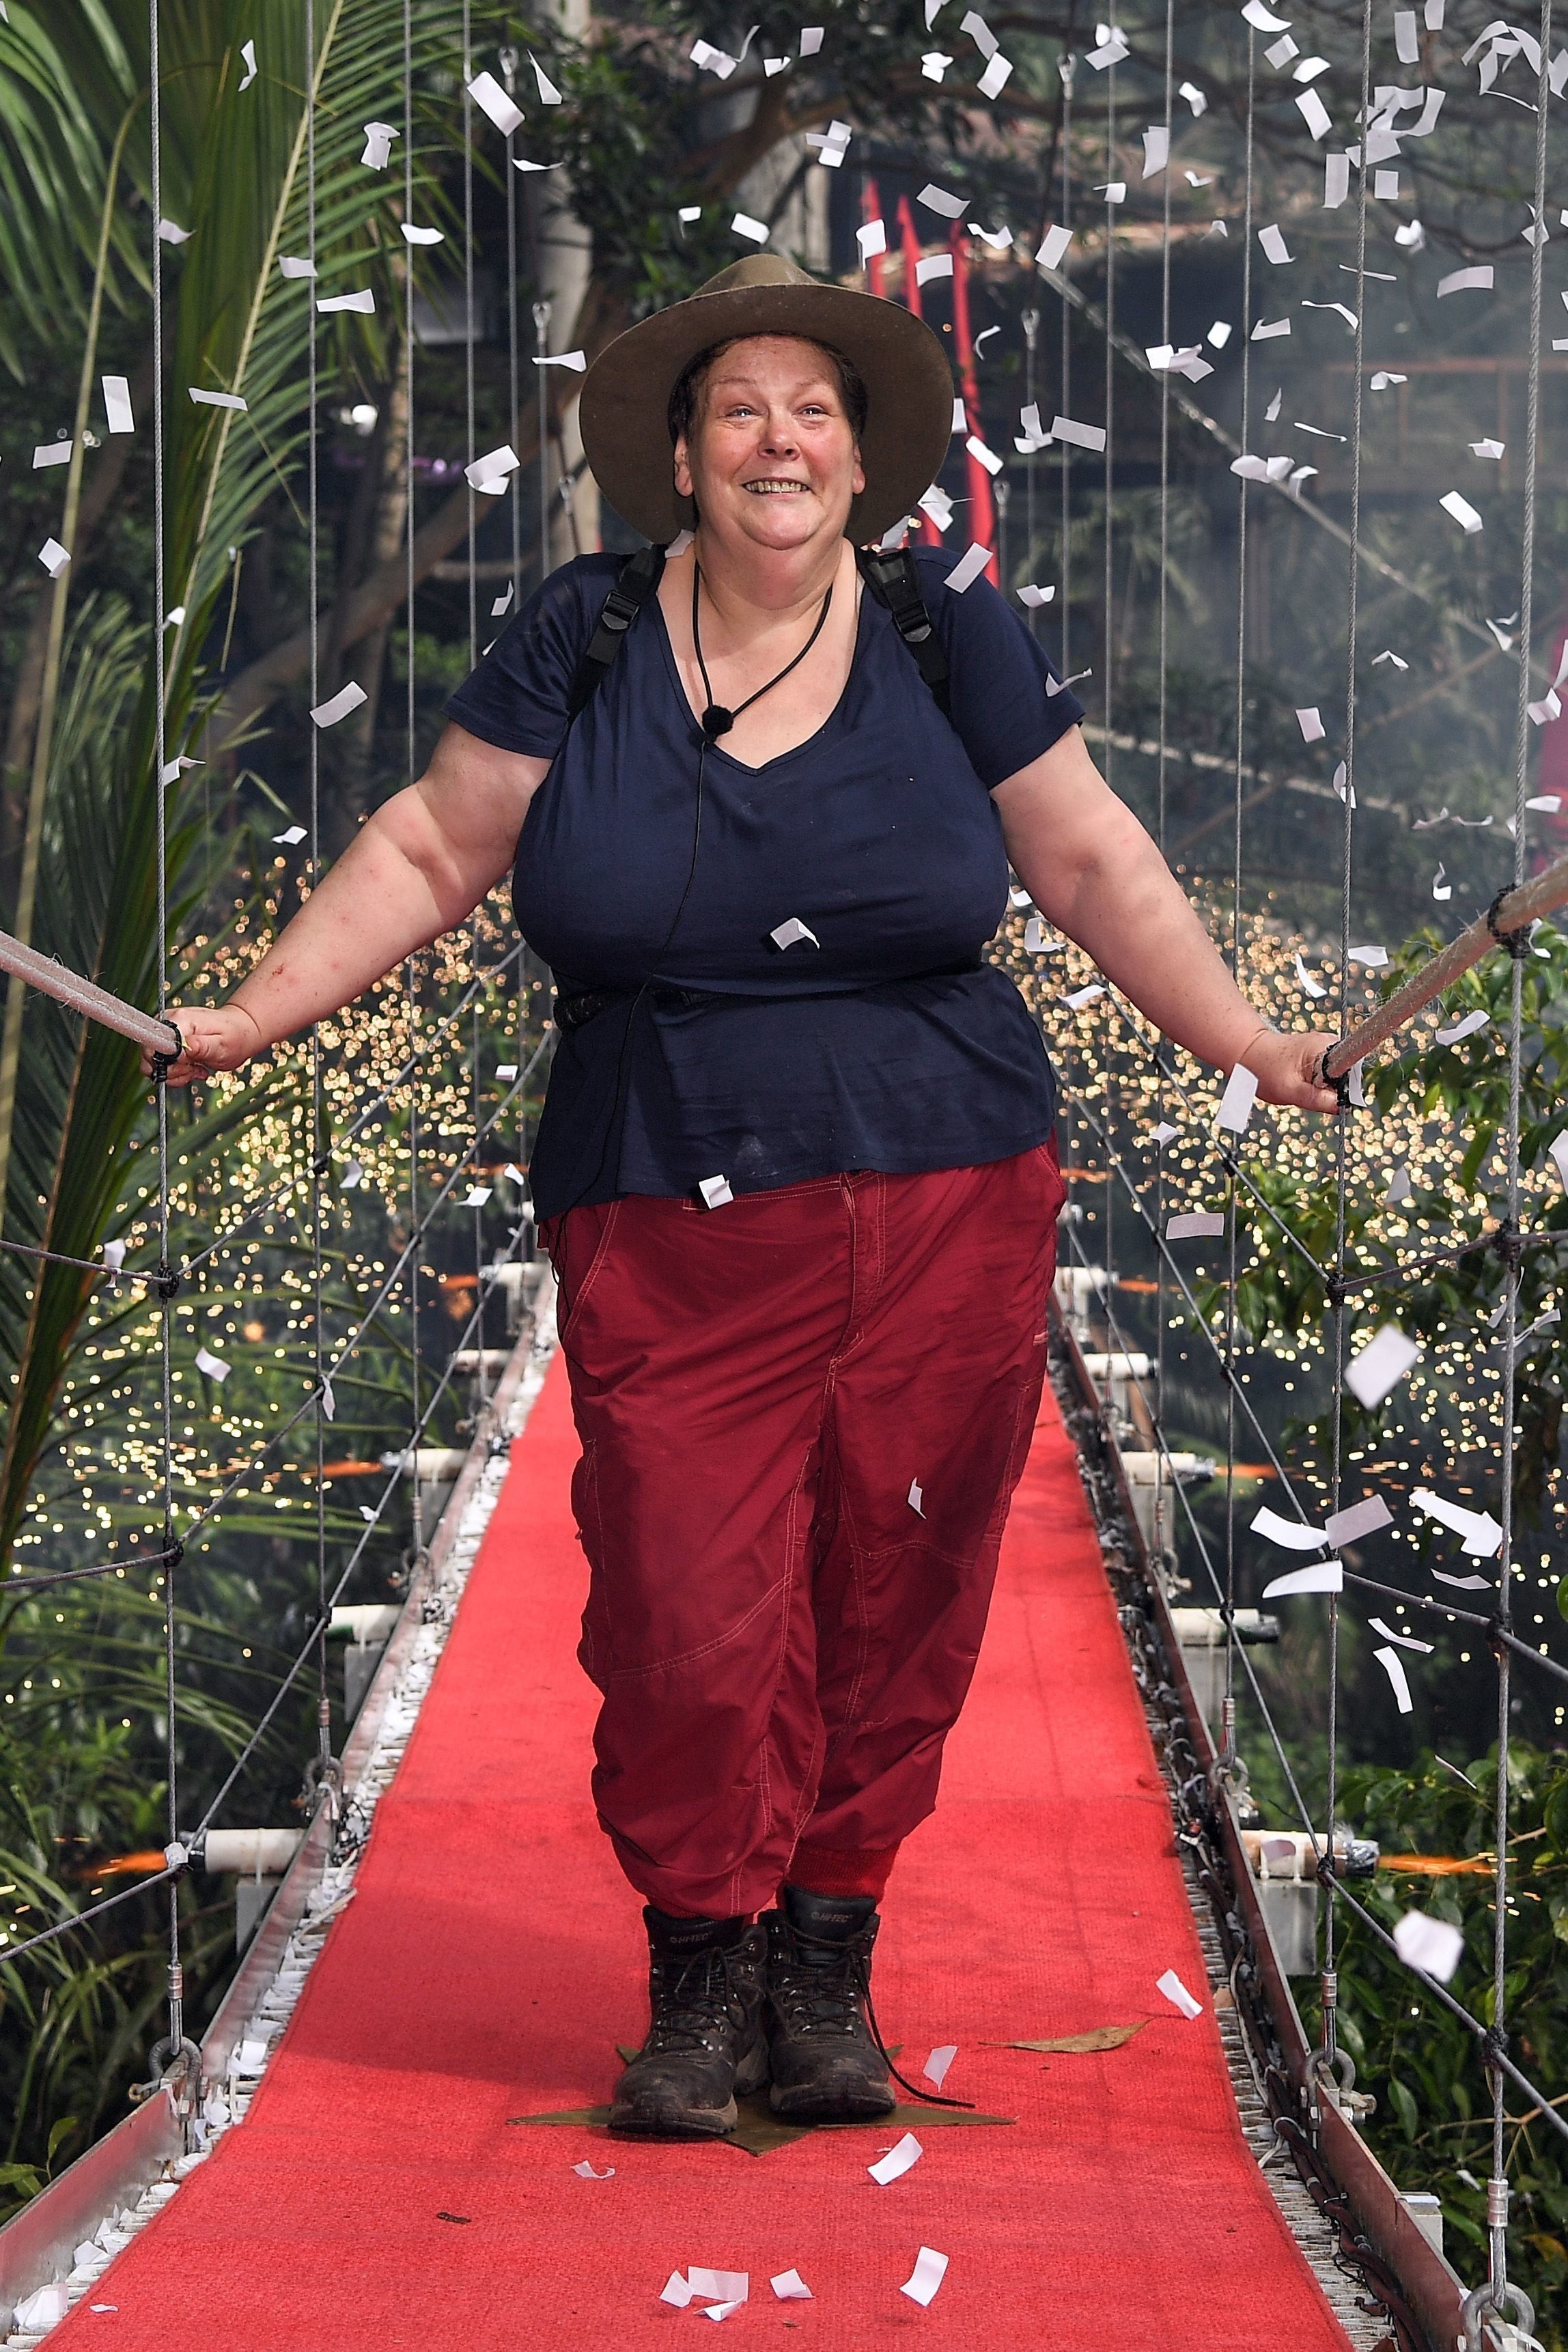 Anne Hegerty Leaves 'I'm A Celebrity' After Latest Public